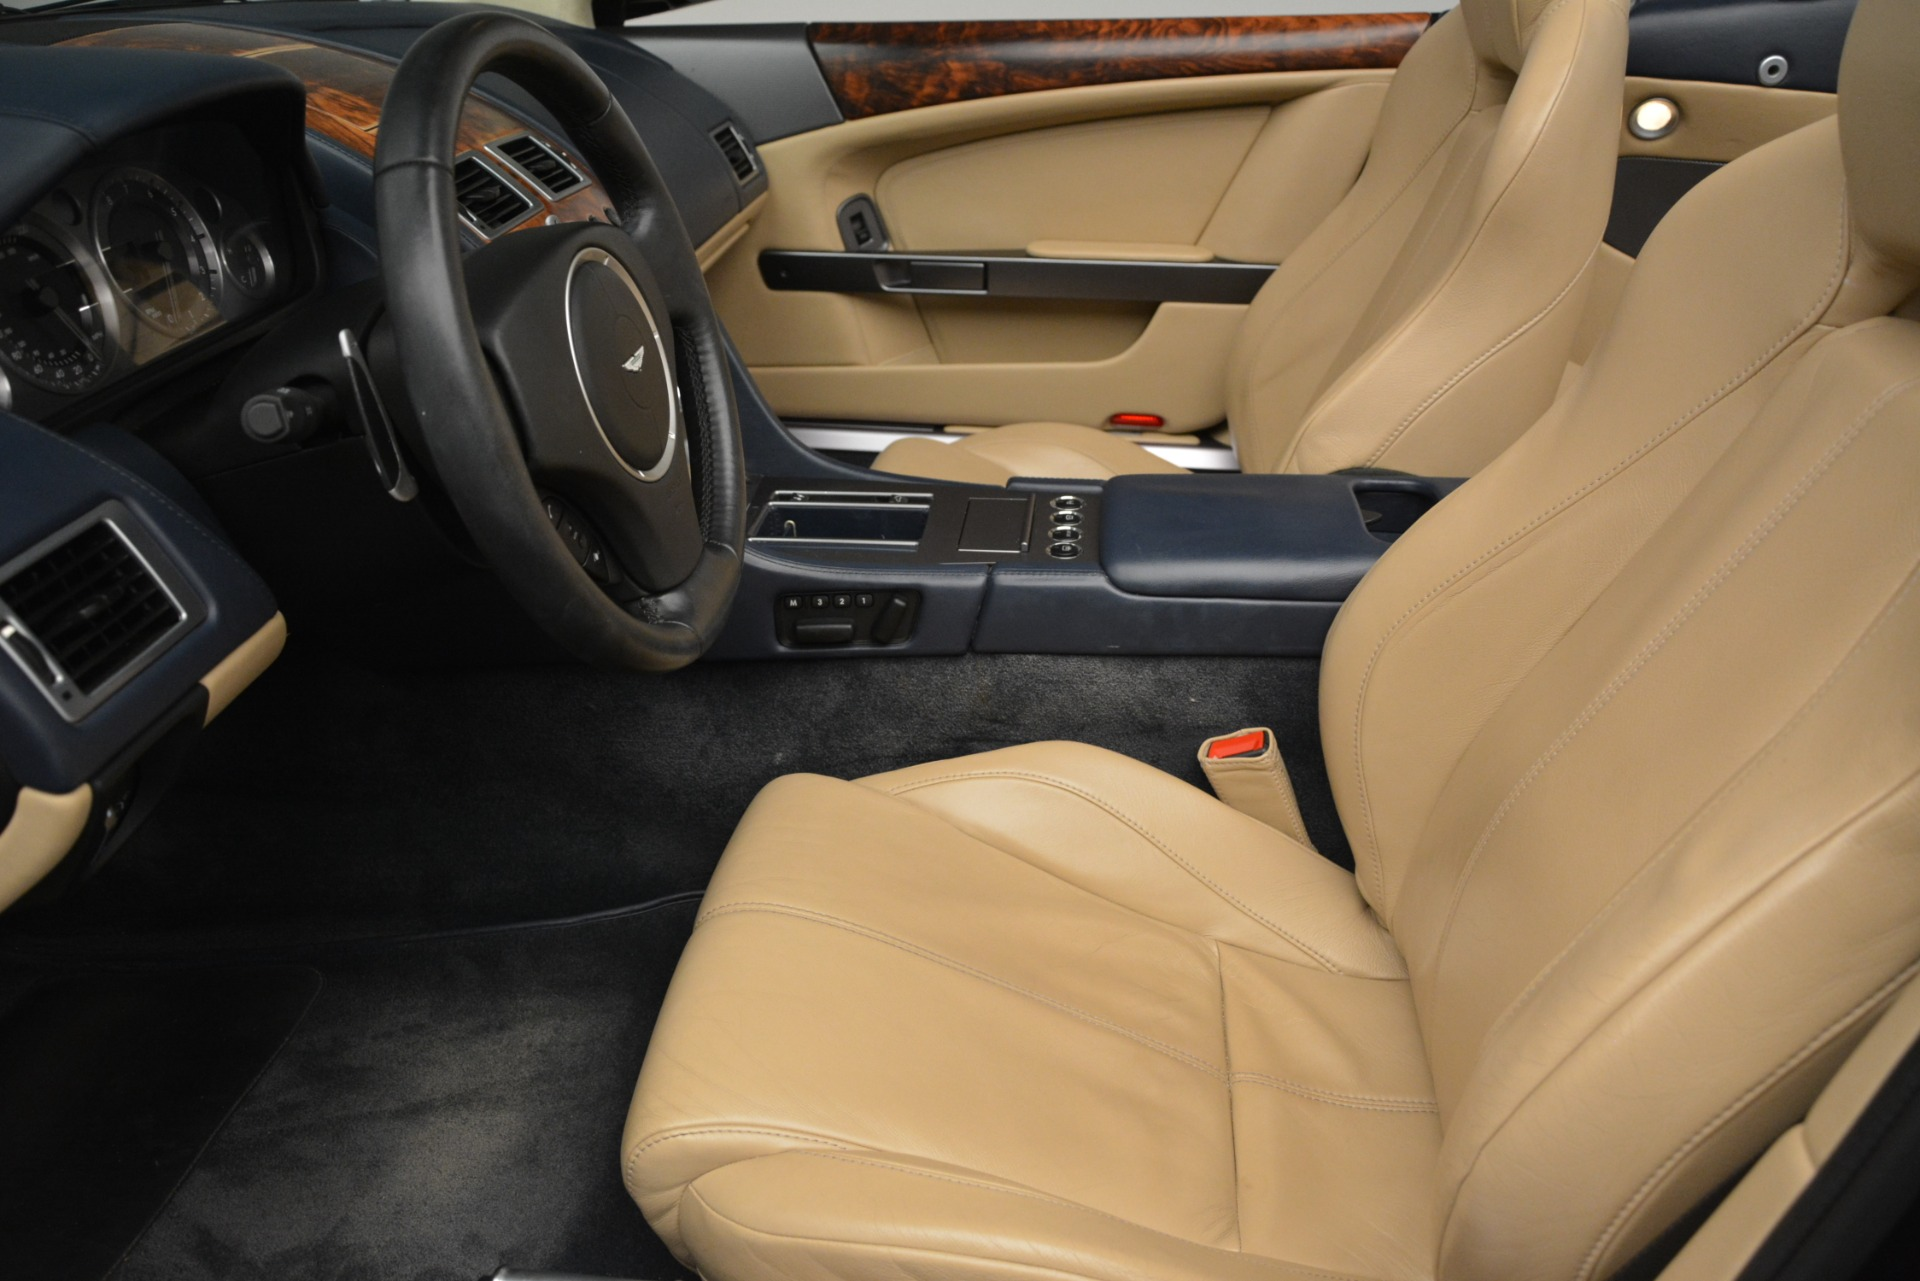 Used 2007 Aston Martin DB9 Convertible For Sale In Greenwich, CT 3291_p15